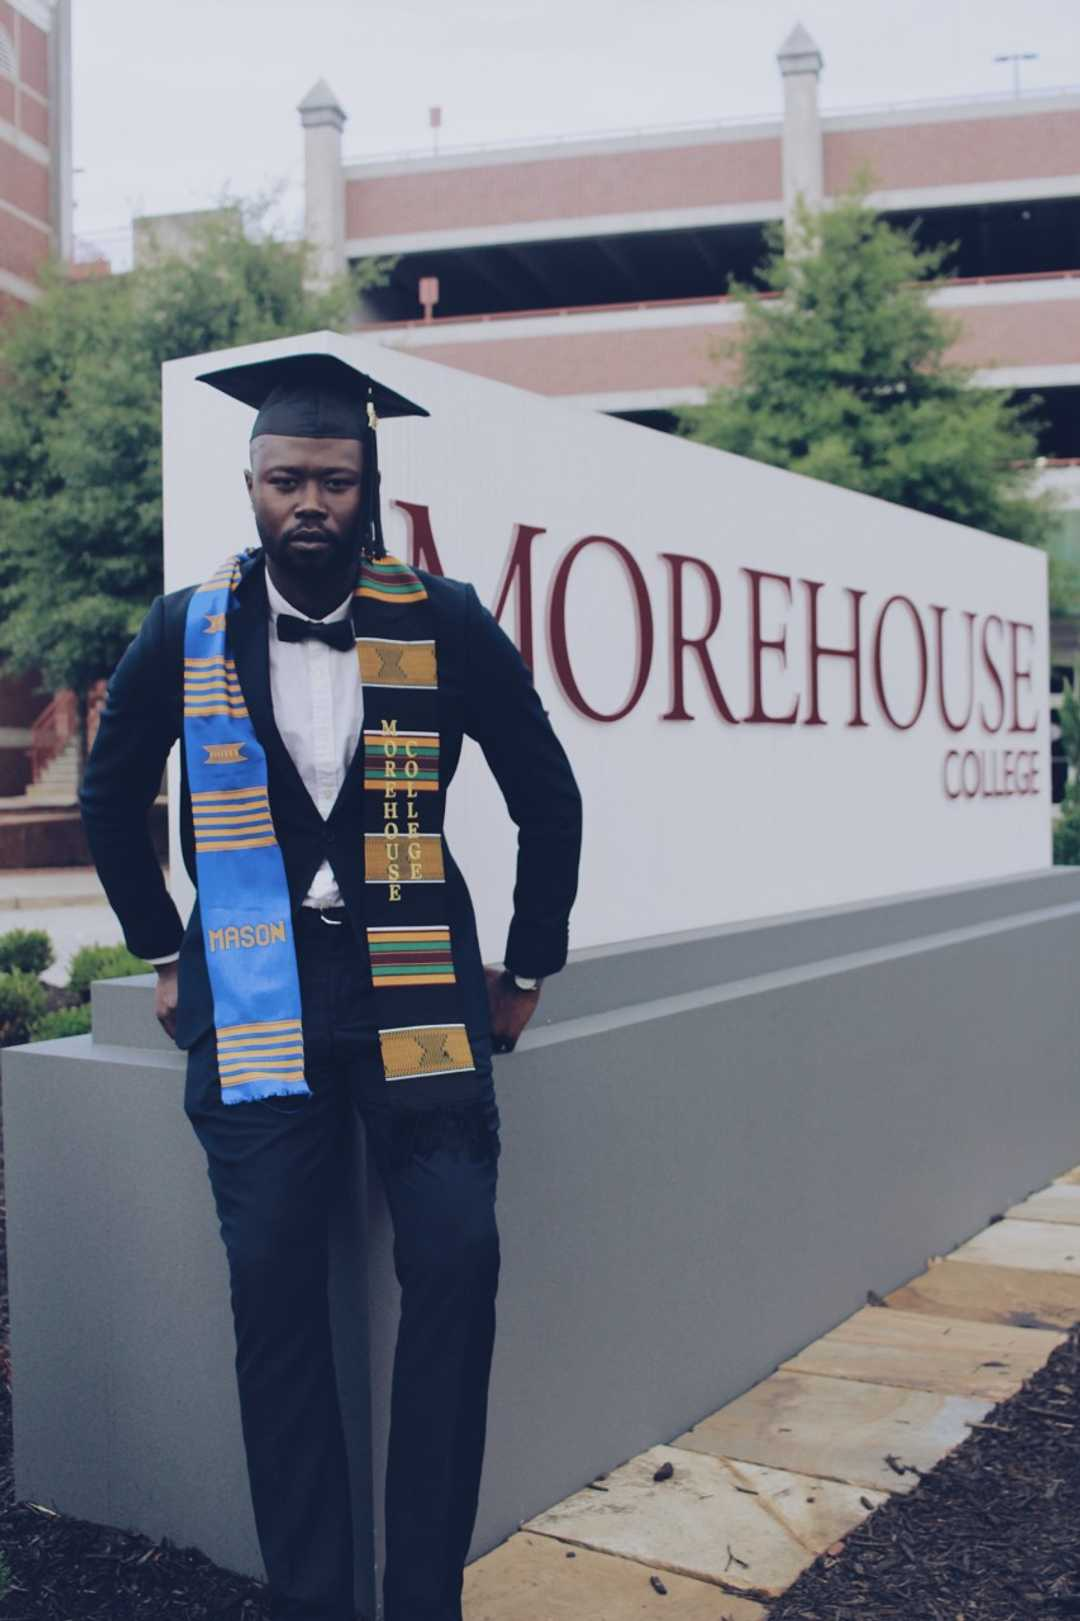 Robert F. Smith's gift to Morehouse, here are 3 fast facts on debt